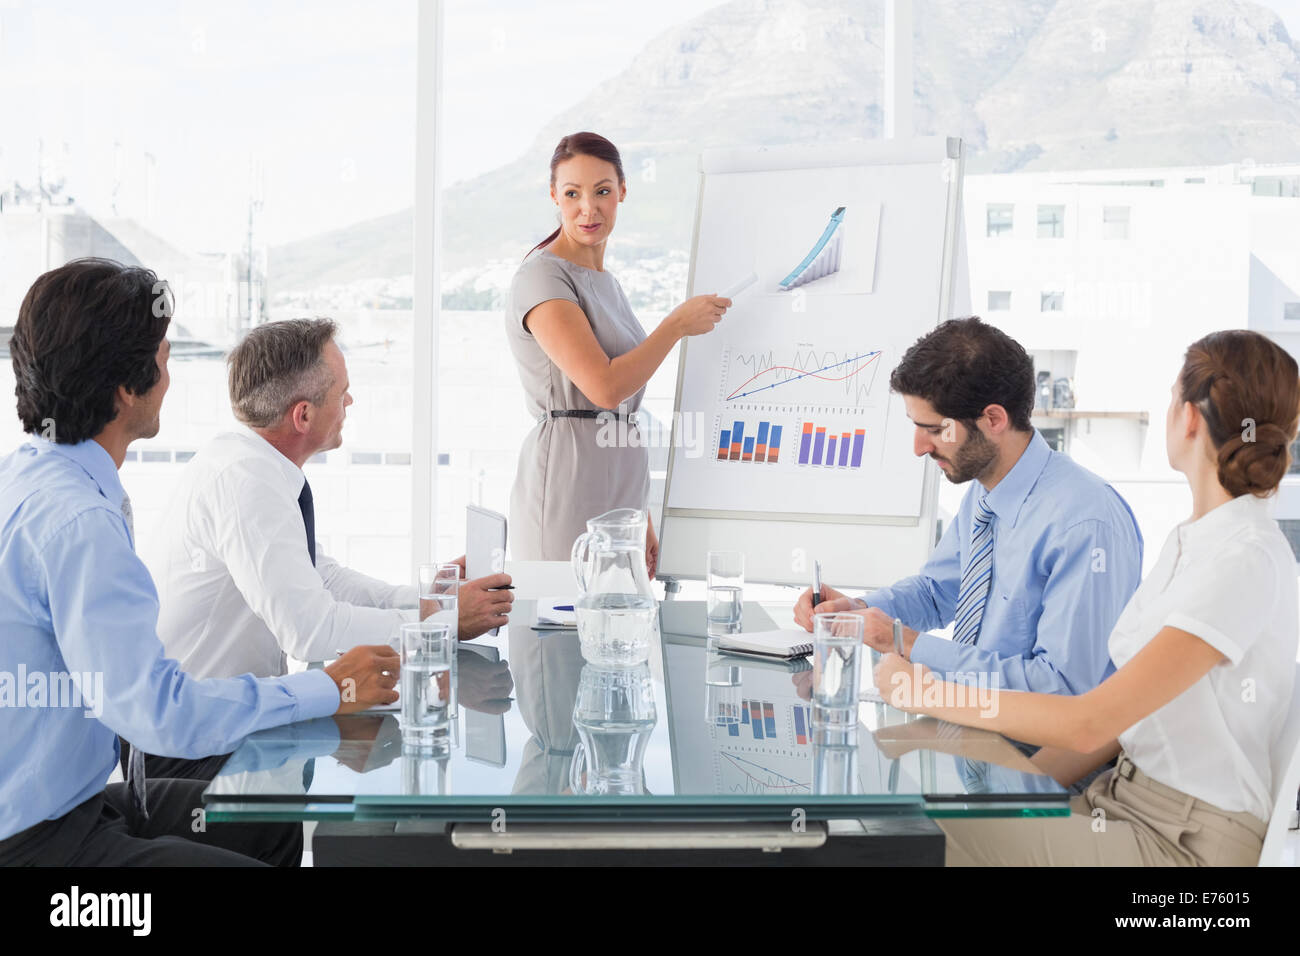 Business woman giving a presentation - Stock Image